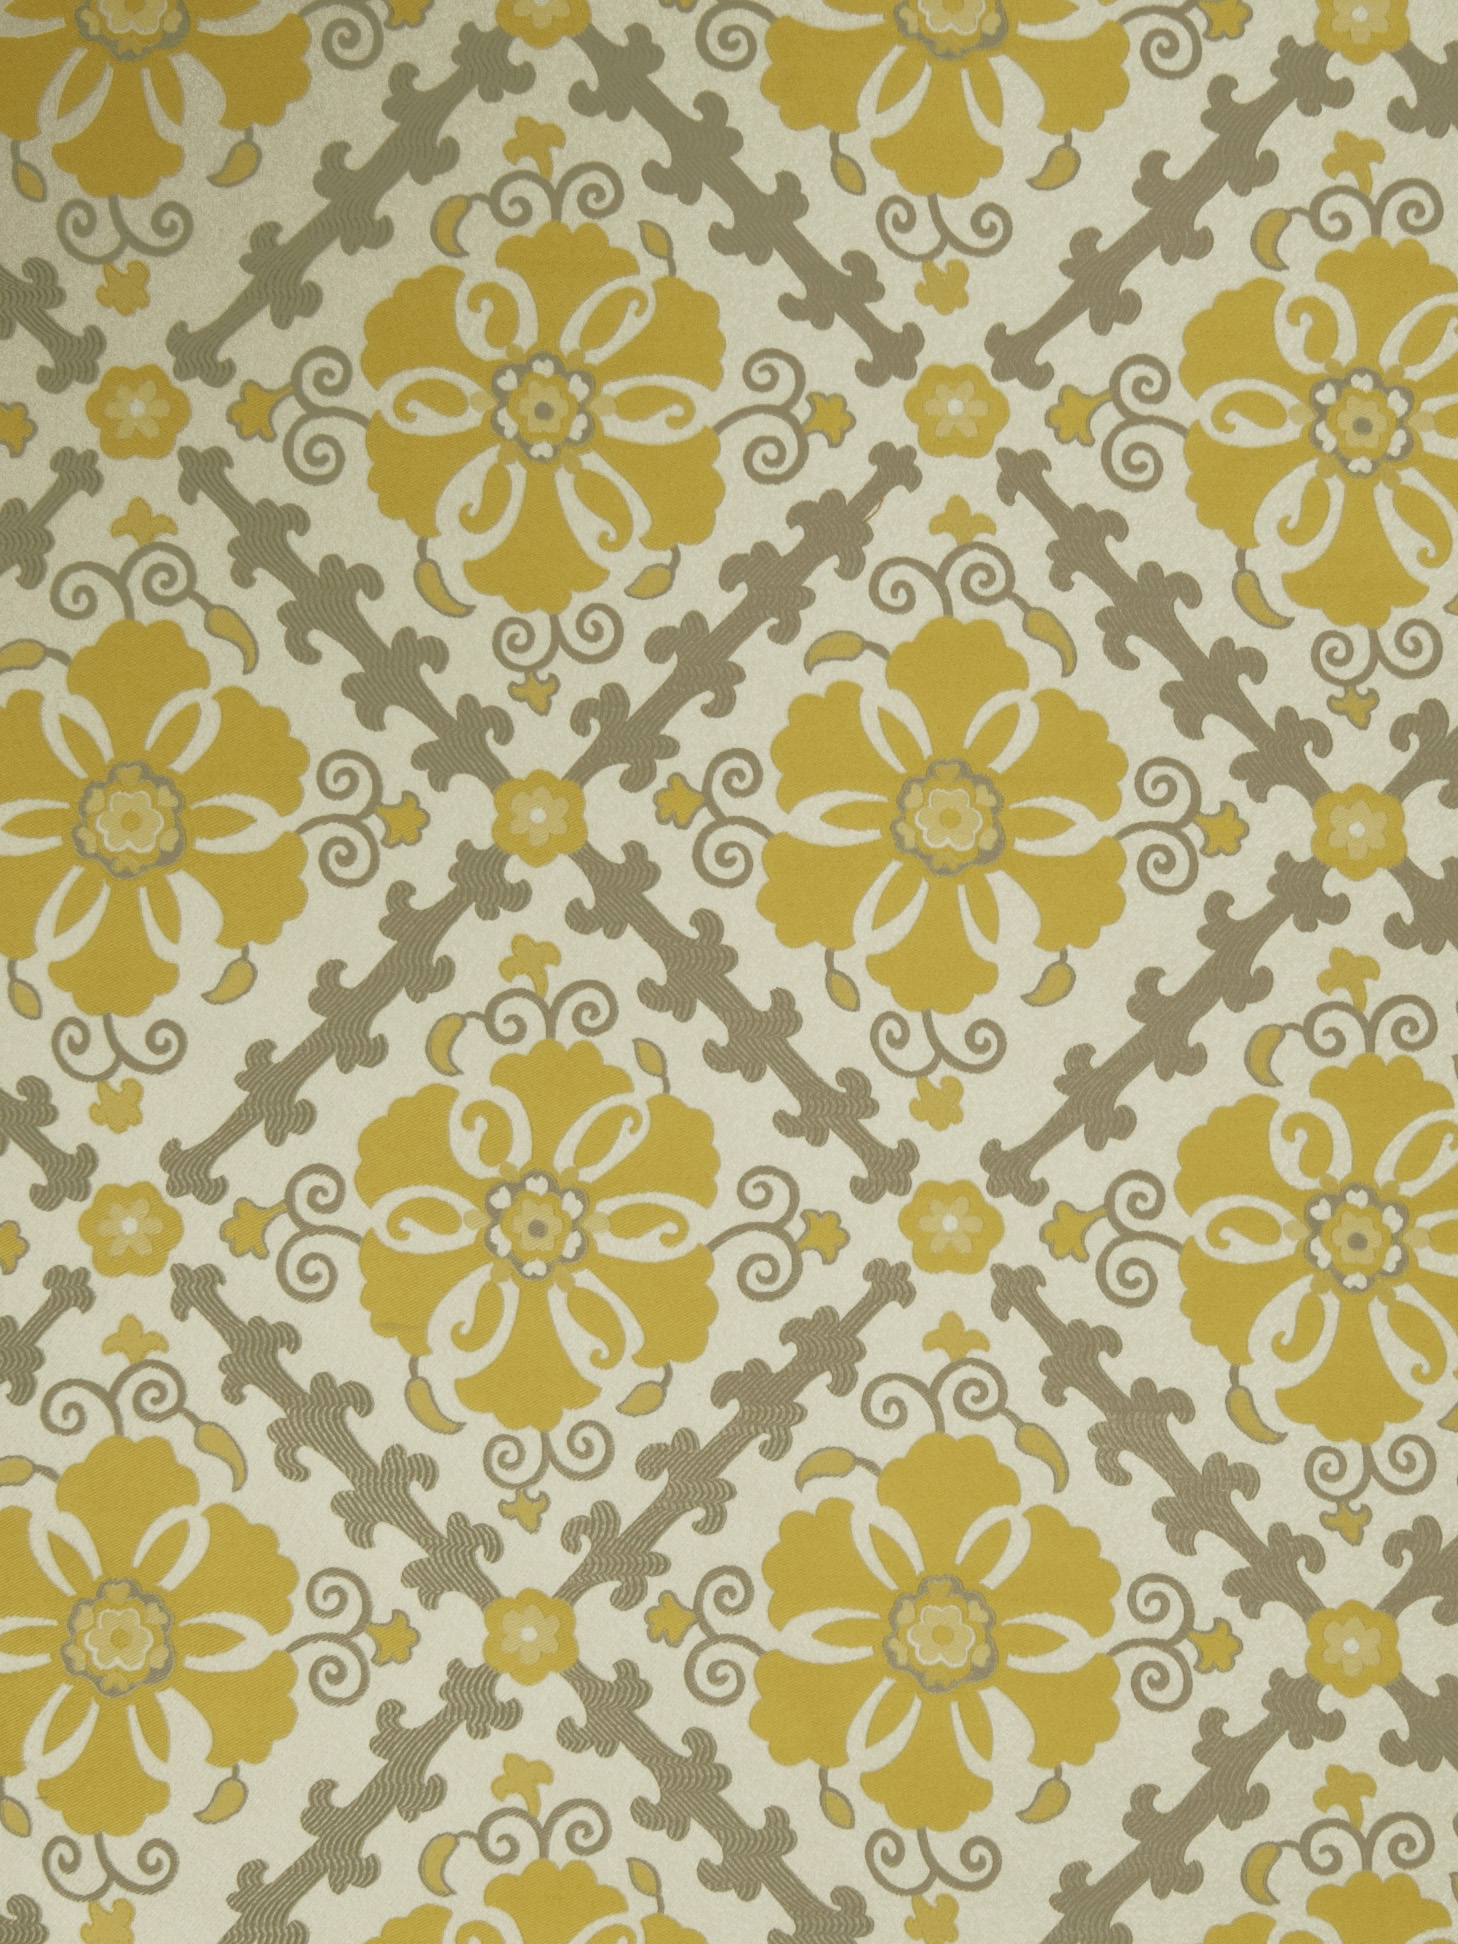 Home Decor 8x8 Fabric Swatch-Jaclyn Smith Akins Lemon Zest